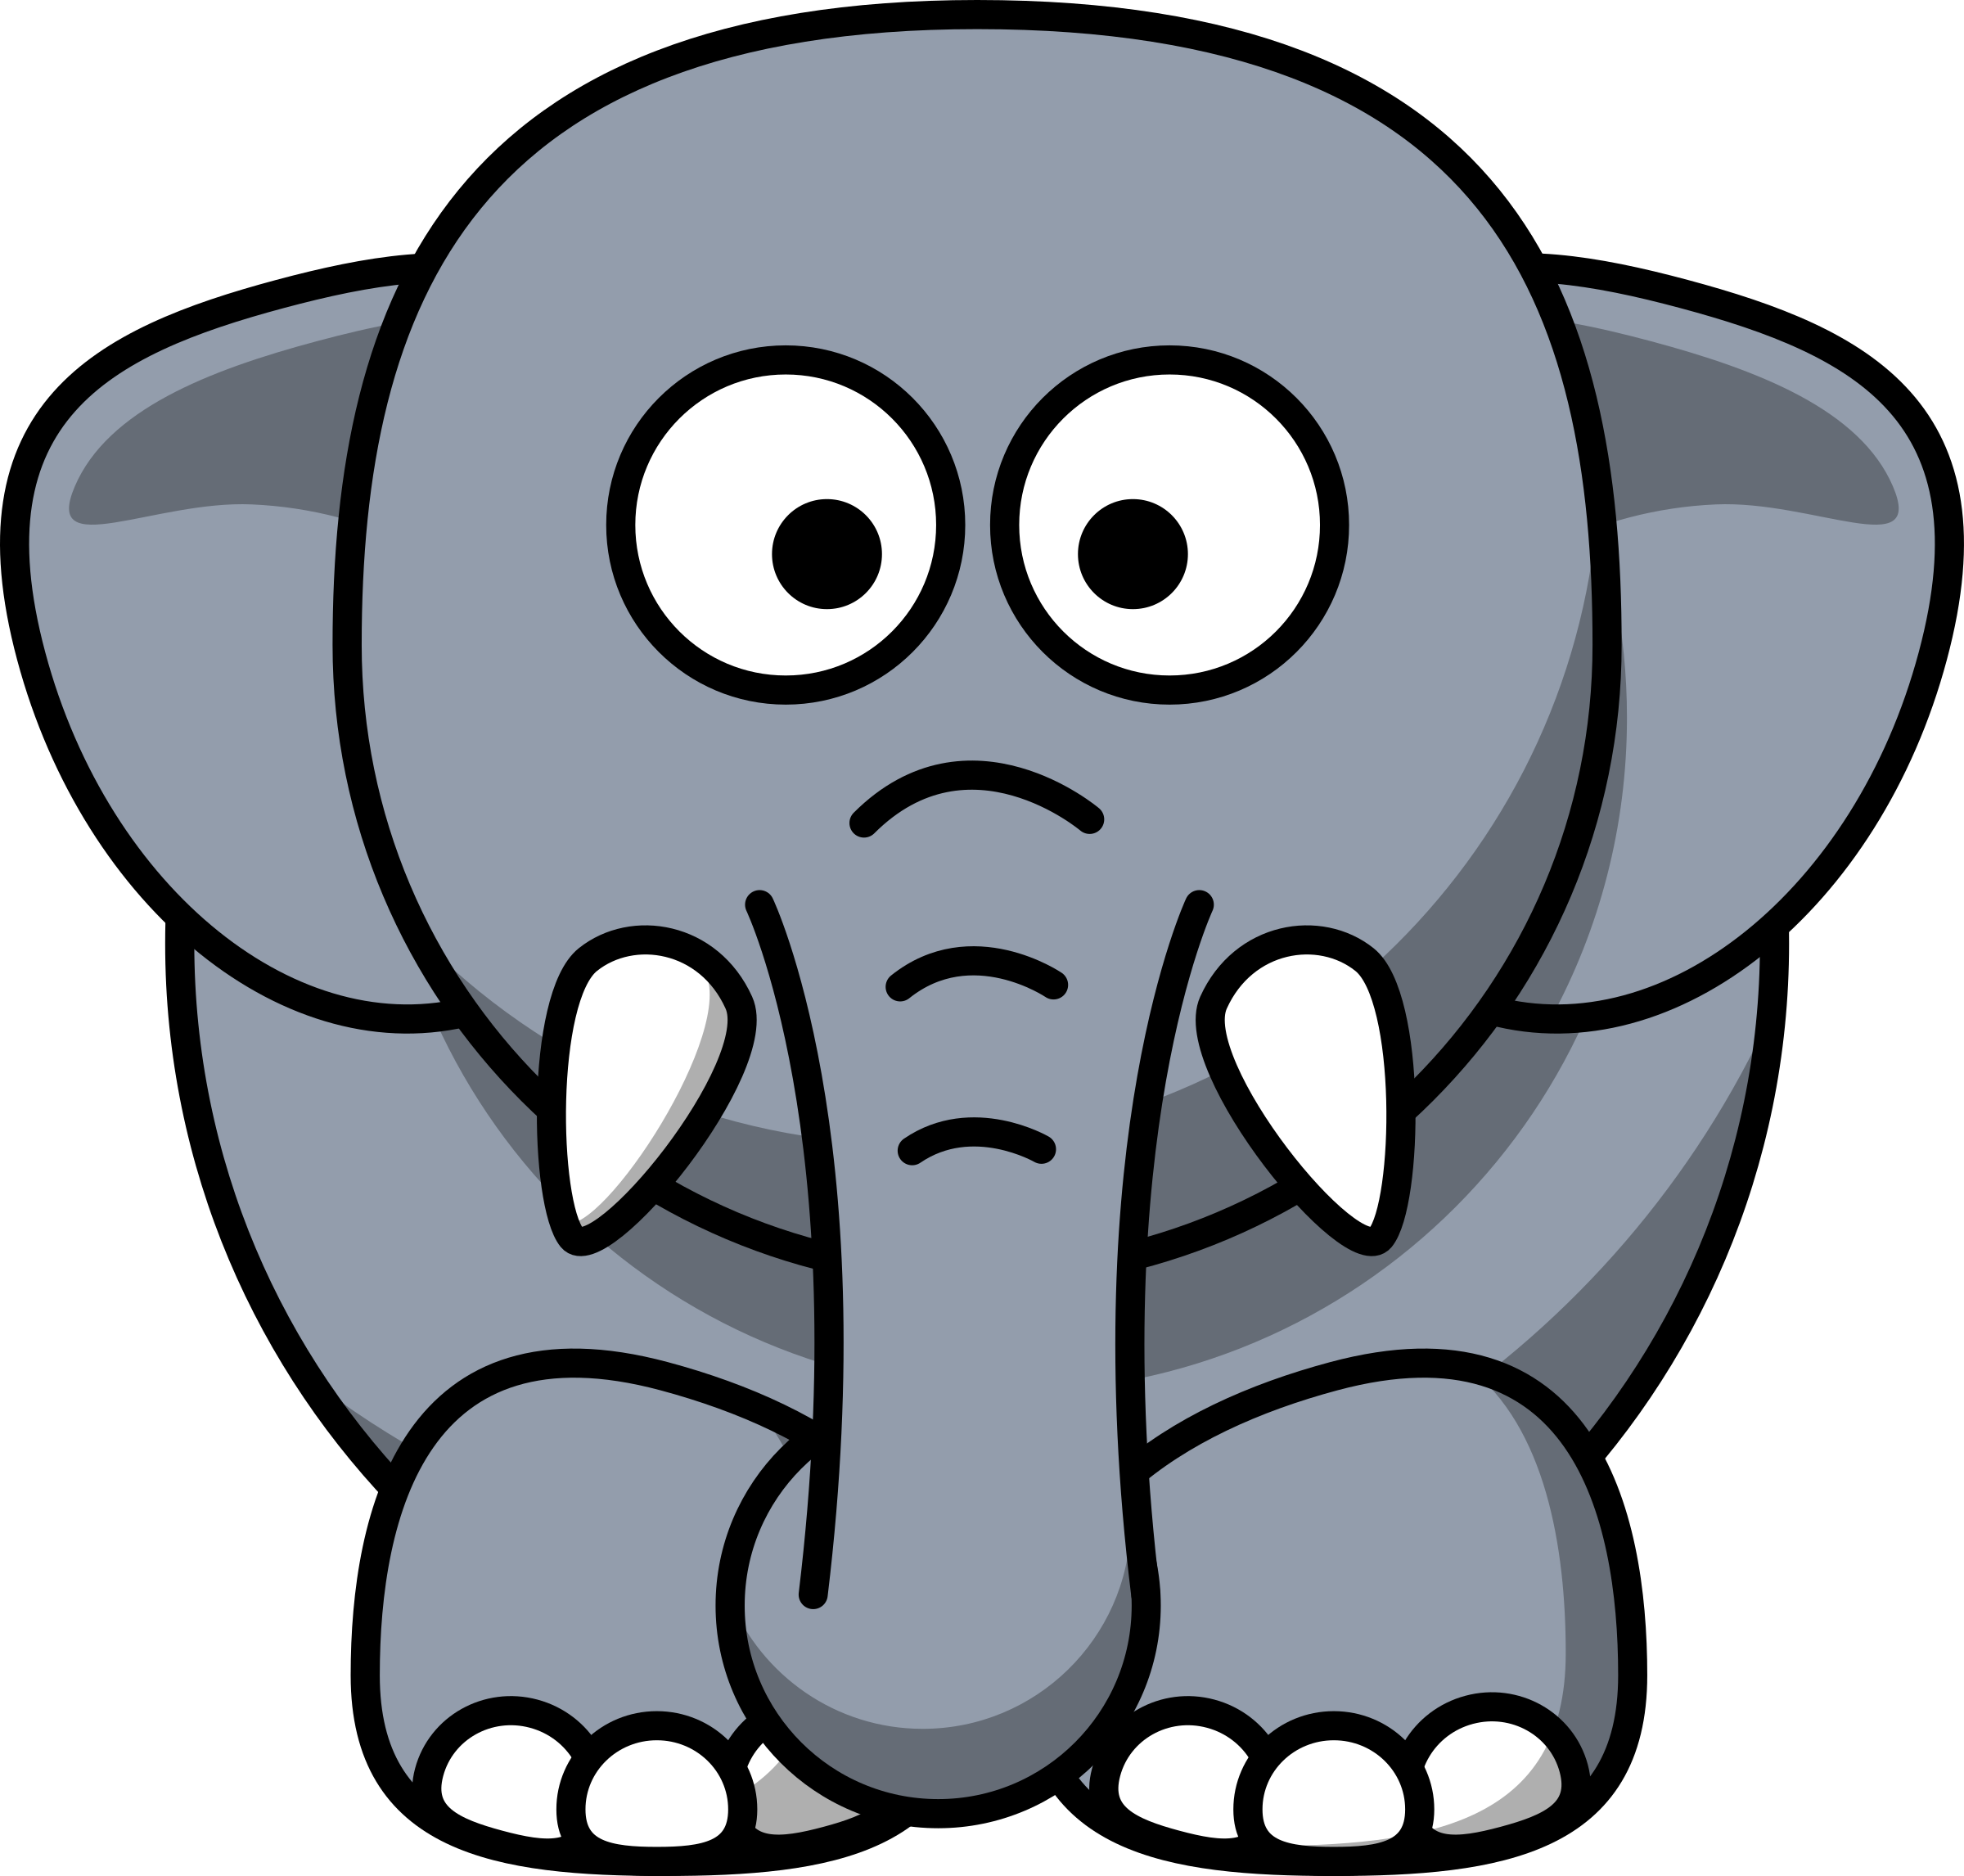 Clipart Elephant Front Clipart Elephant Front Transparent Free For Download On Webstockreview 2020 This clipart image is transparent you can download (600x567) elephant front and back png clip art for free. clipart elephant front clipart